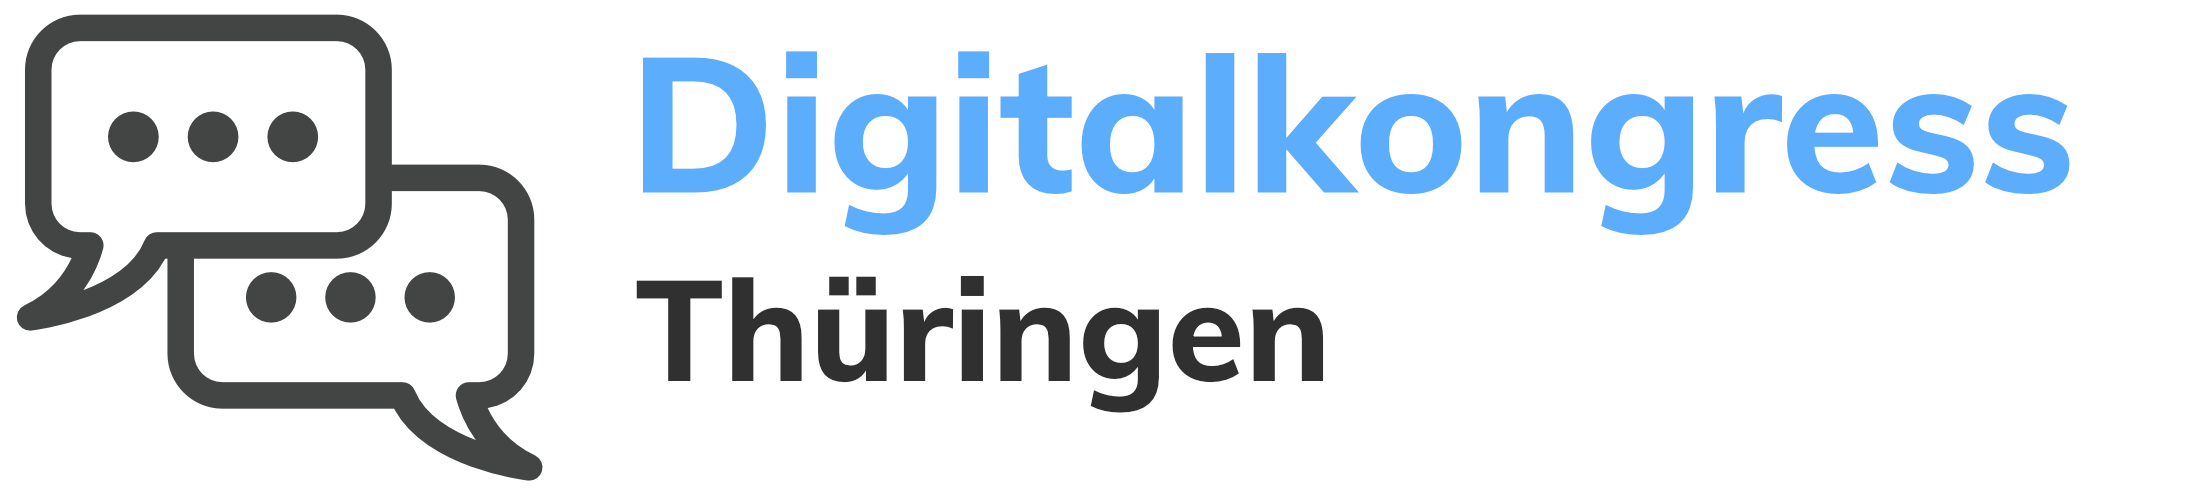 Digitalkongress Thüringen